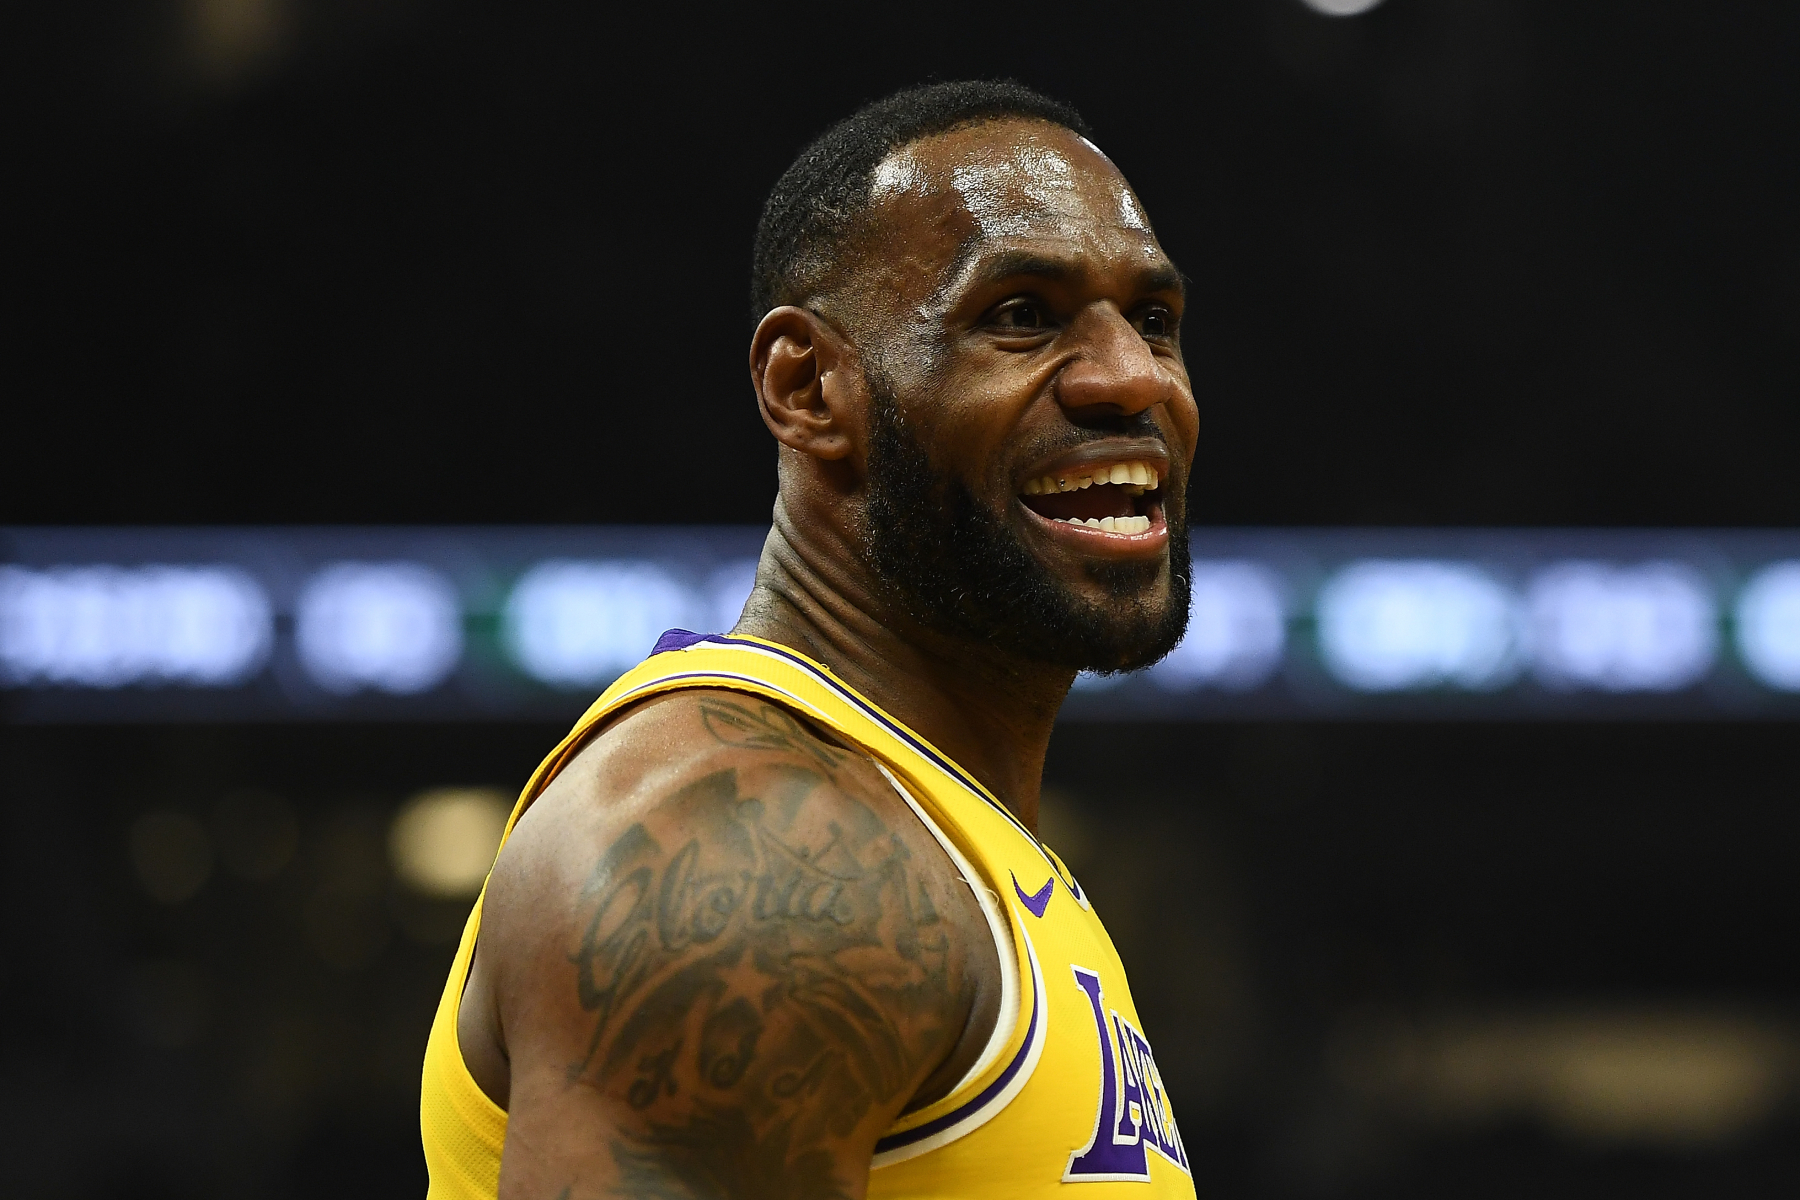 The NBA season is scheduled to resume at the end of July in Orlando. LeBron James, however, will be back on TV before that.